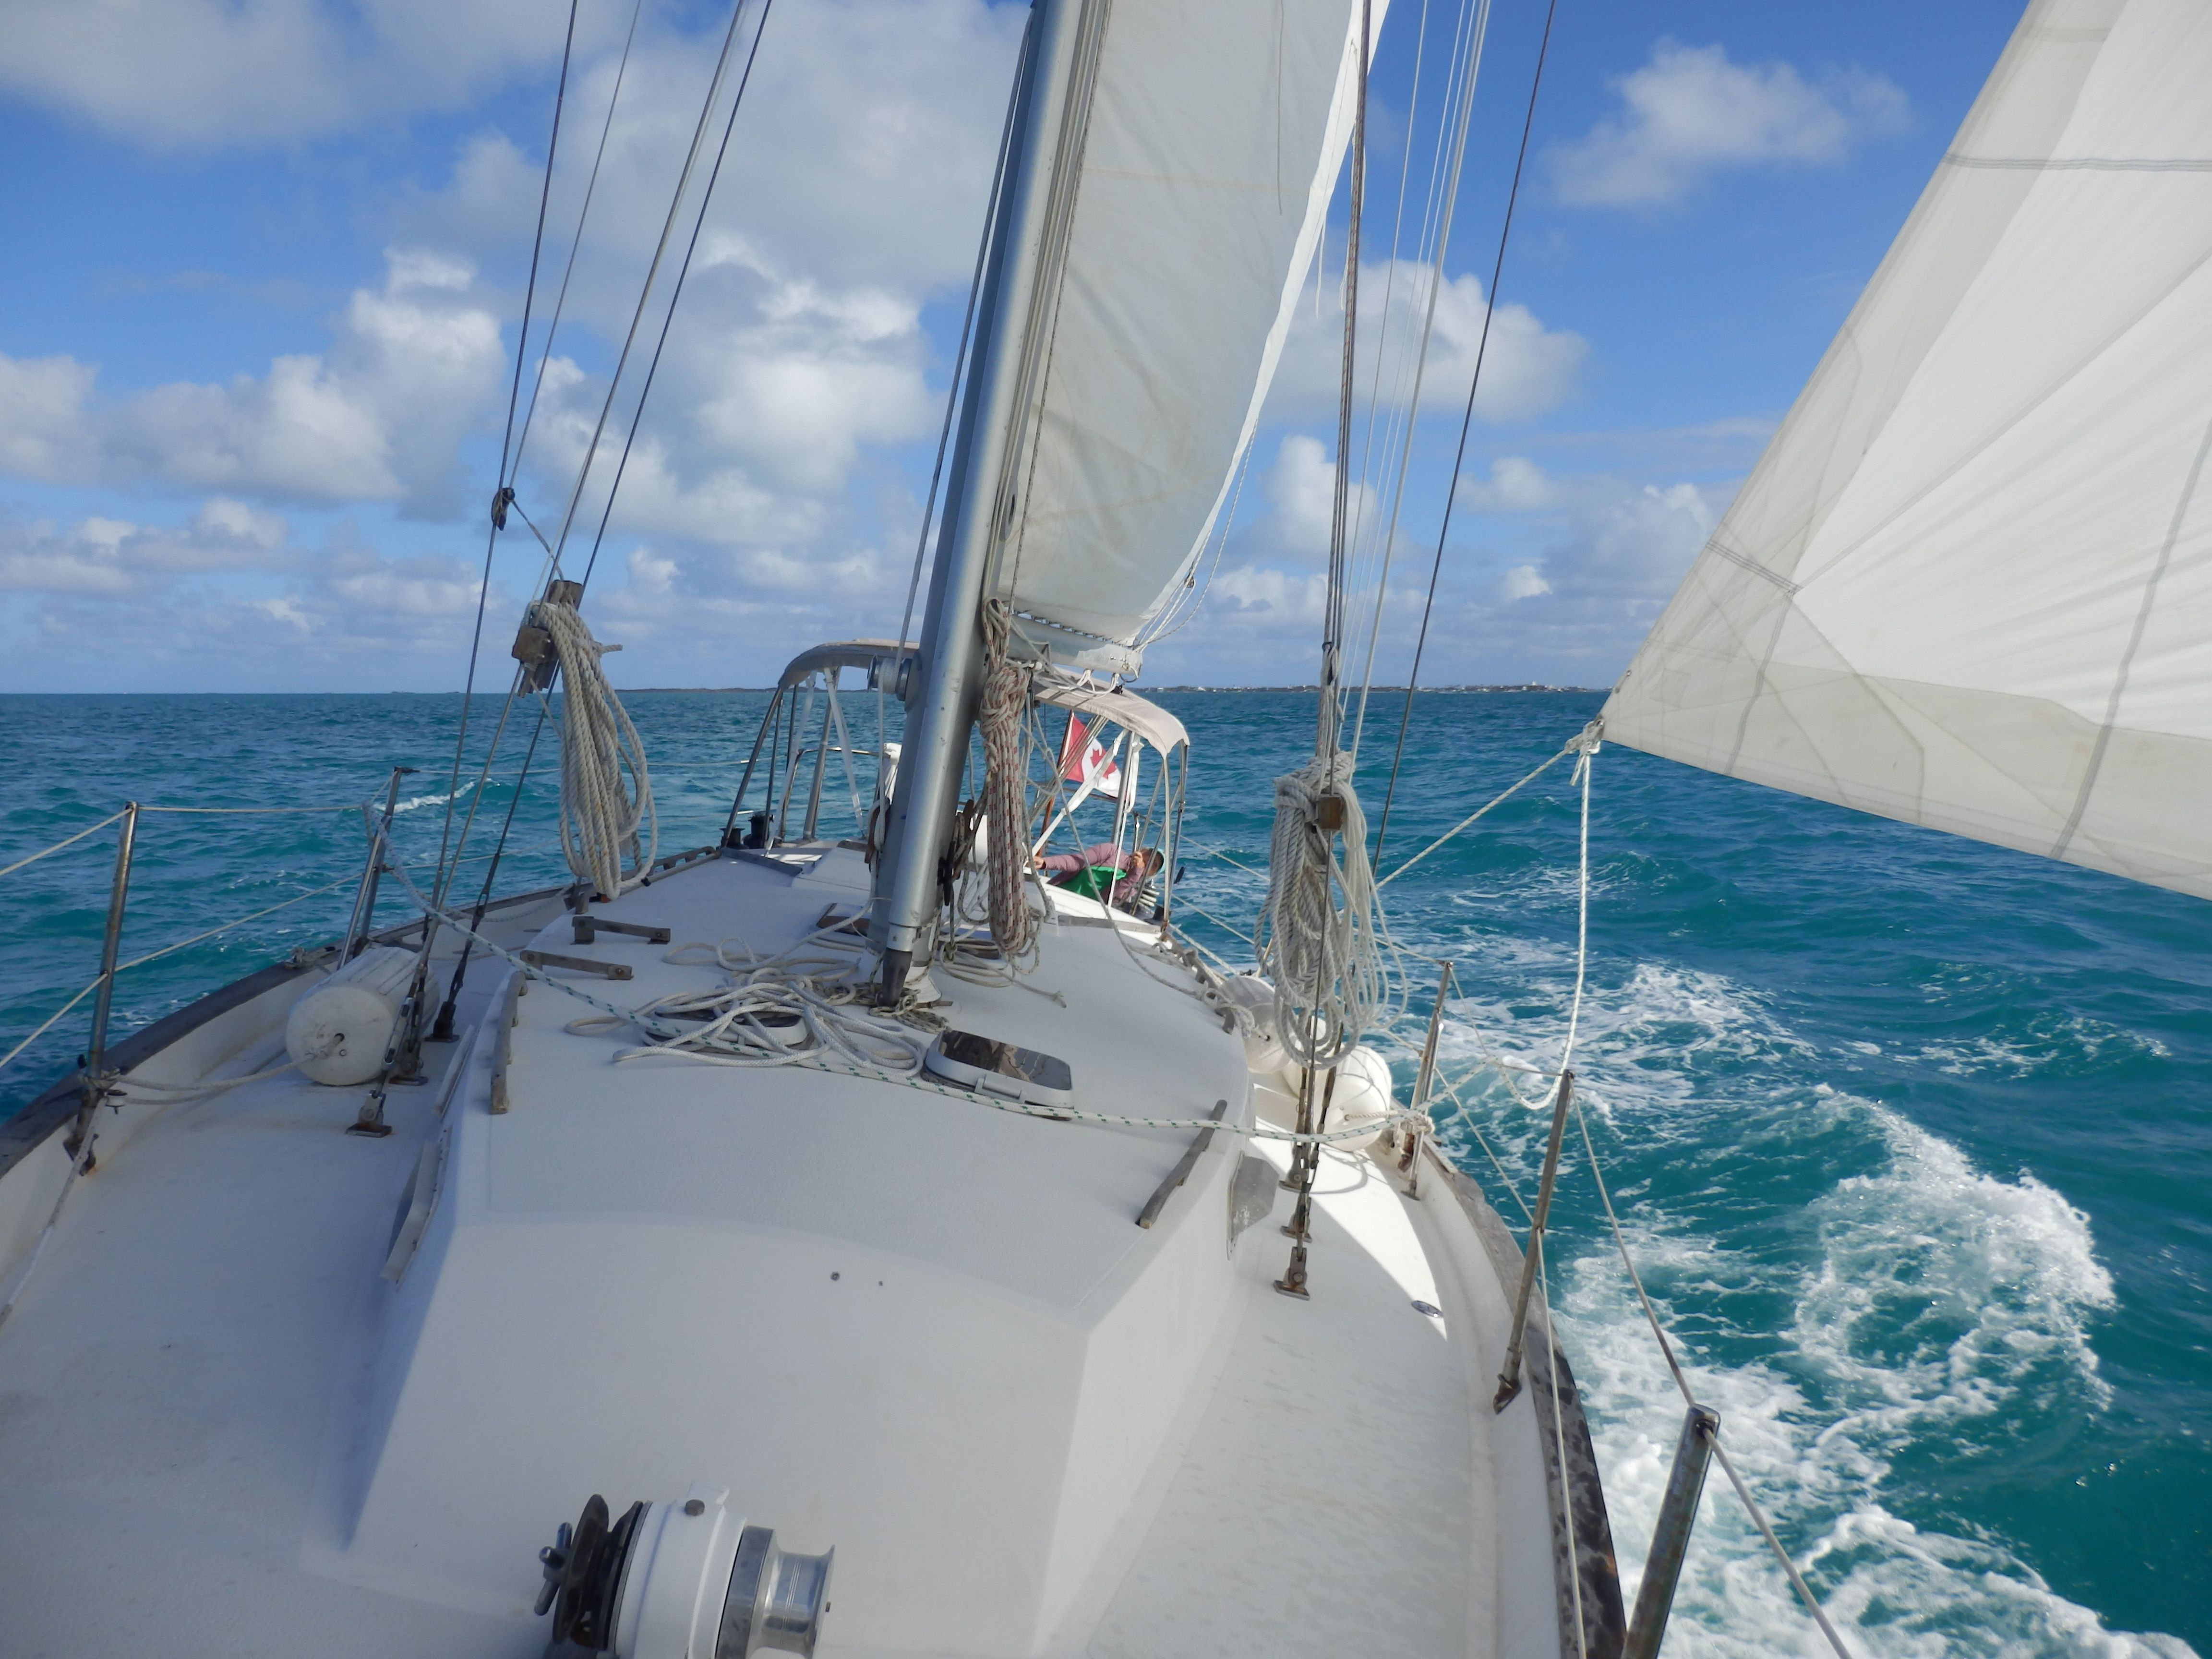 Sailing into the Sea of Abaco